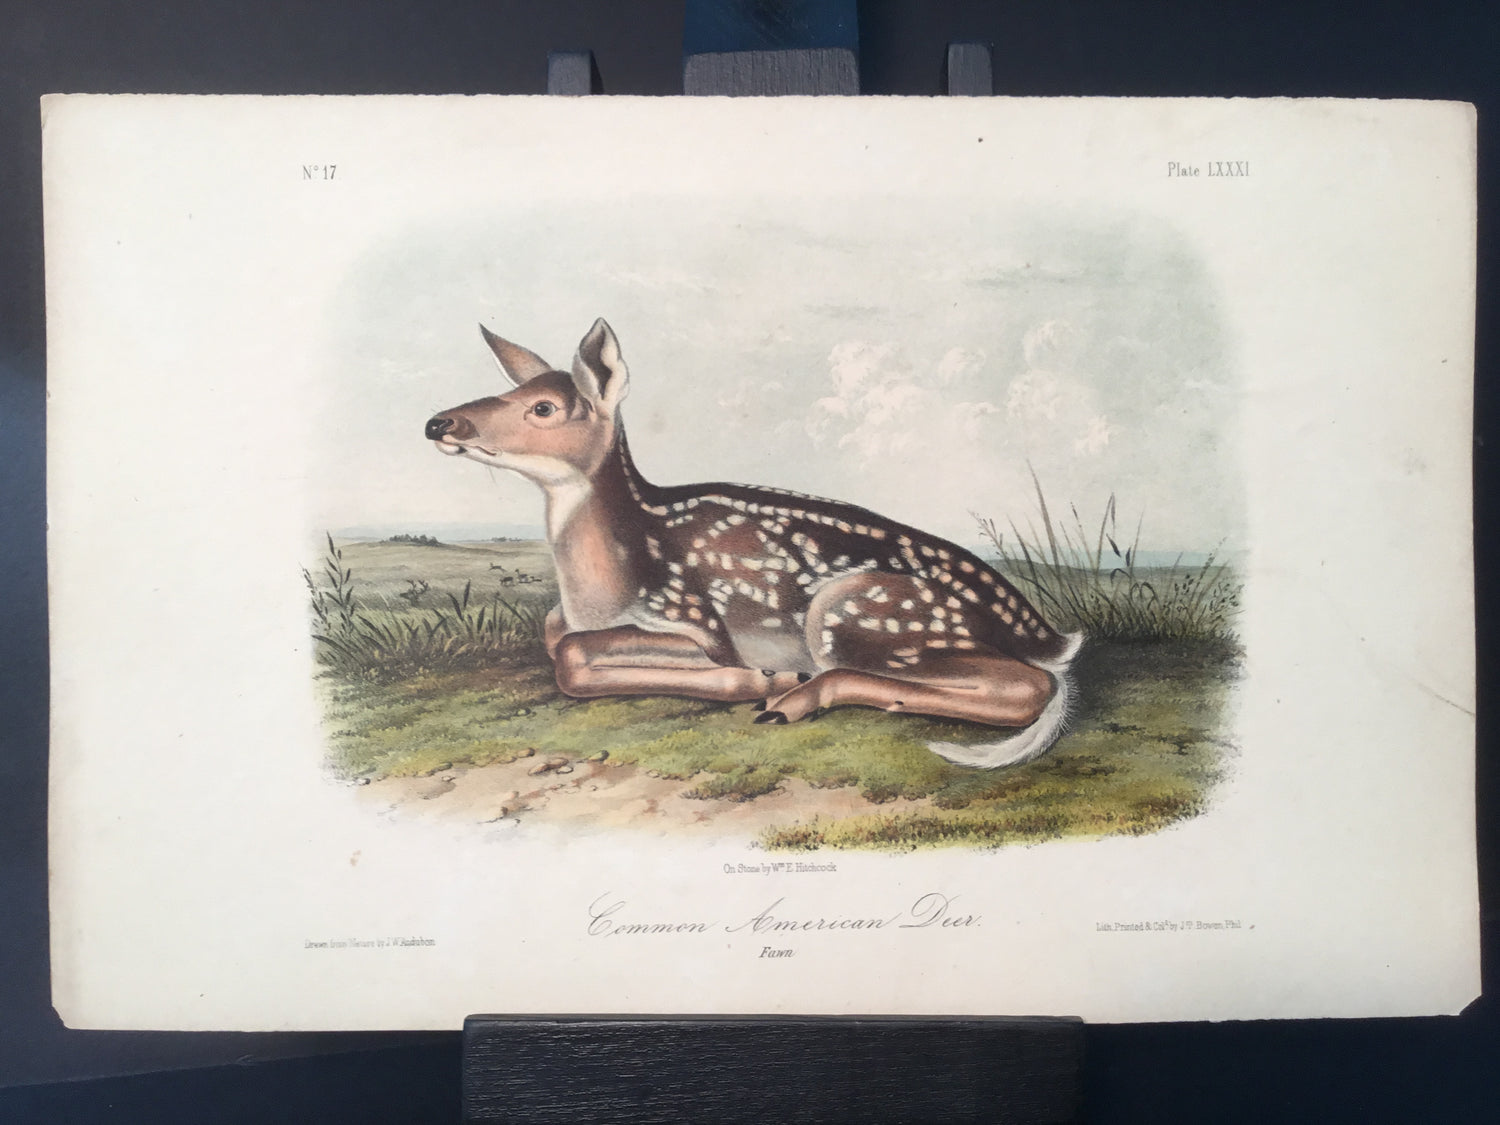 Lord-Hopkins Collection - Common American Deer, Fawn